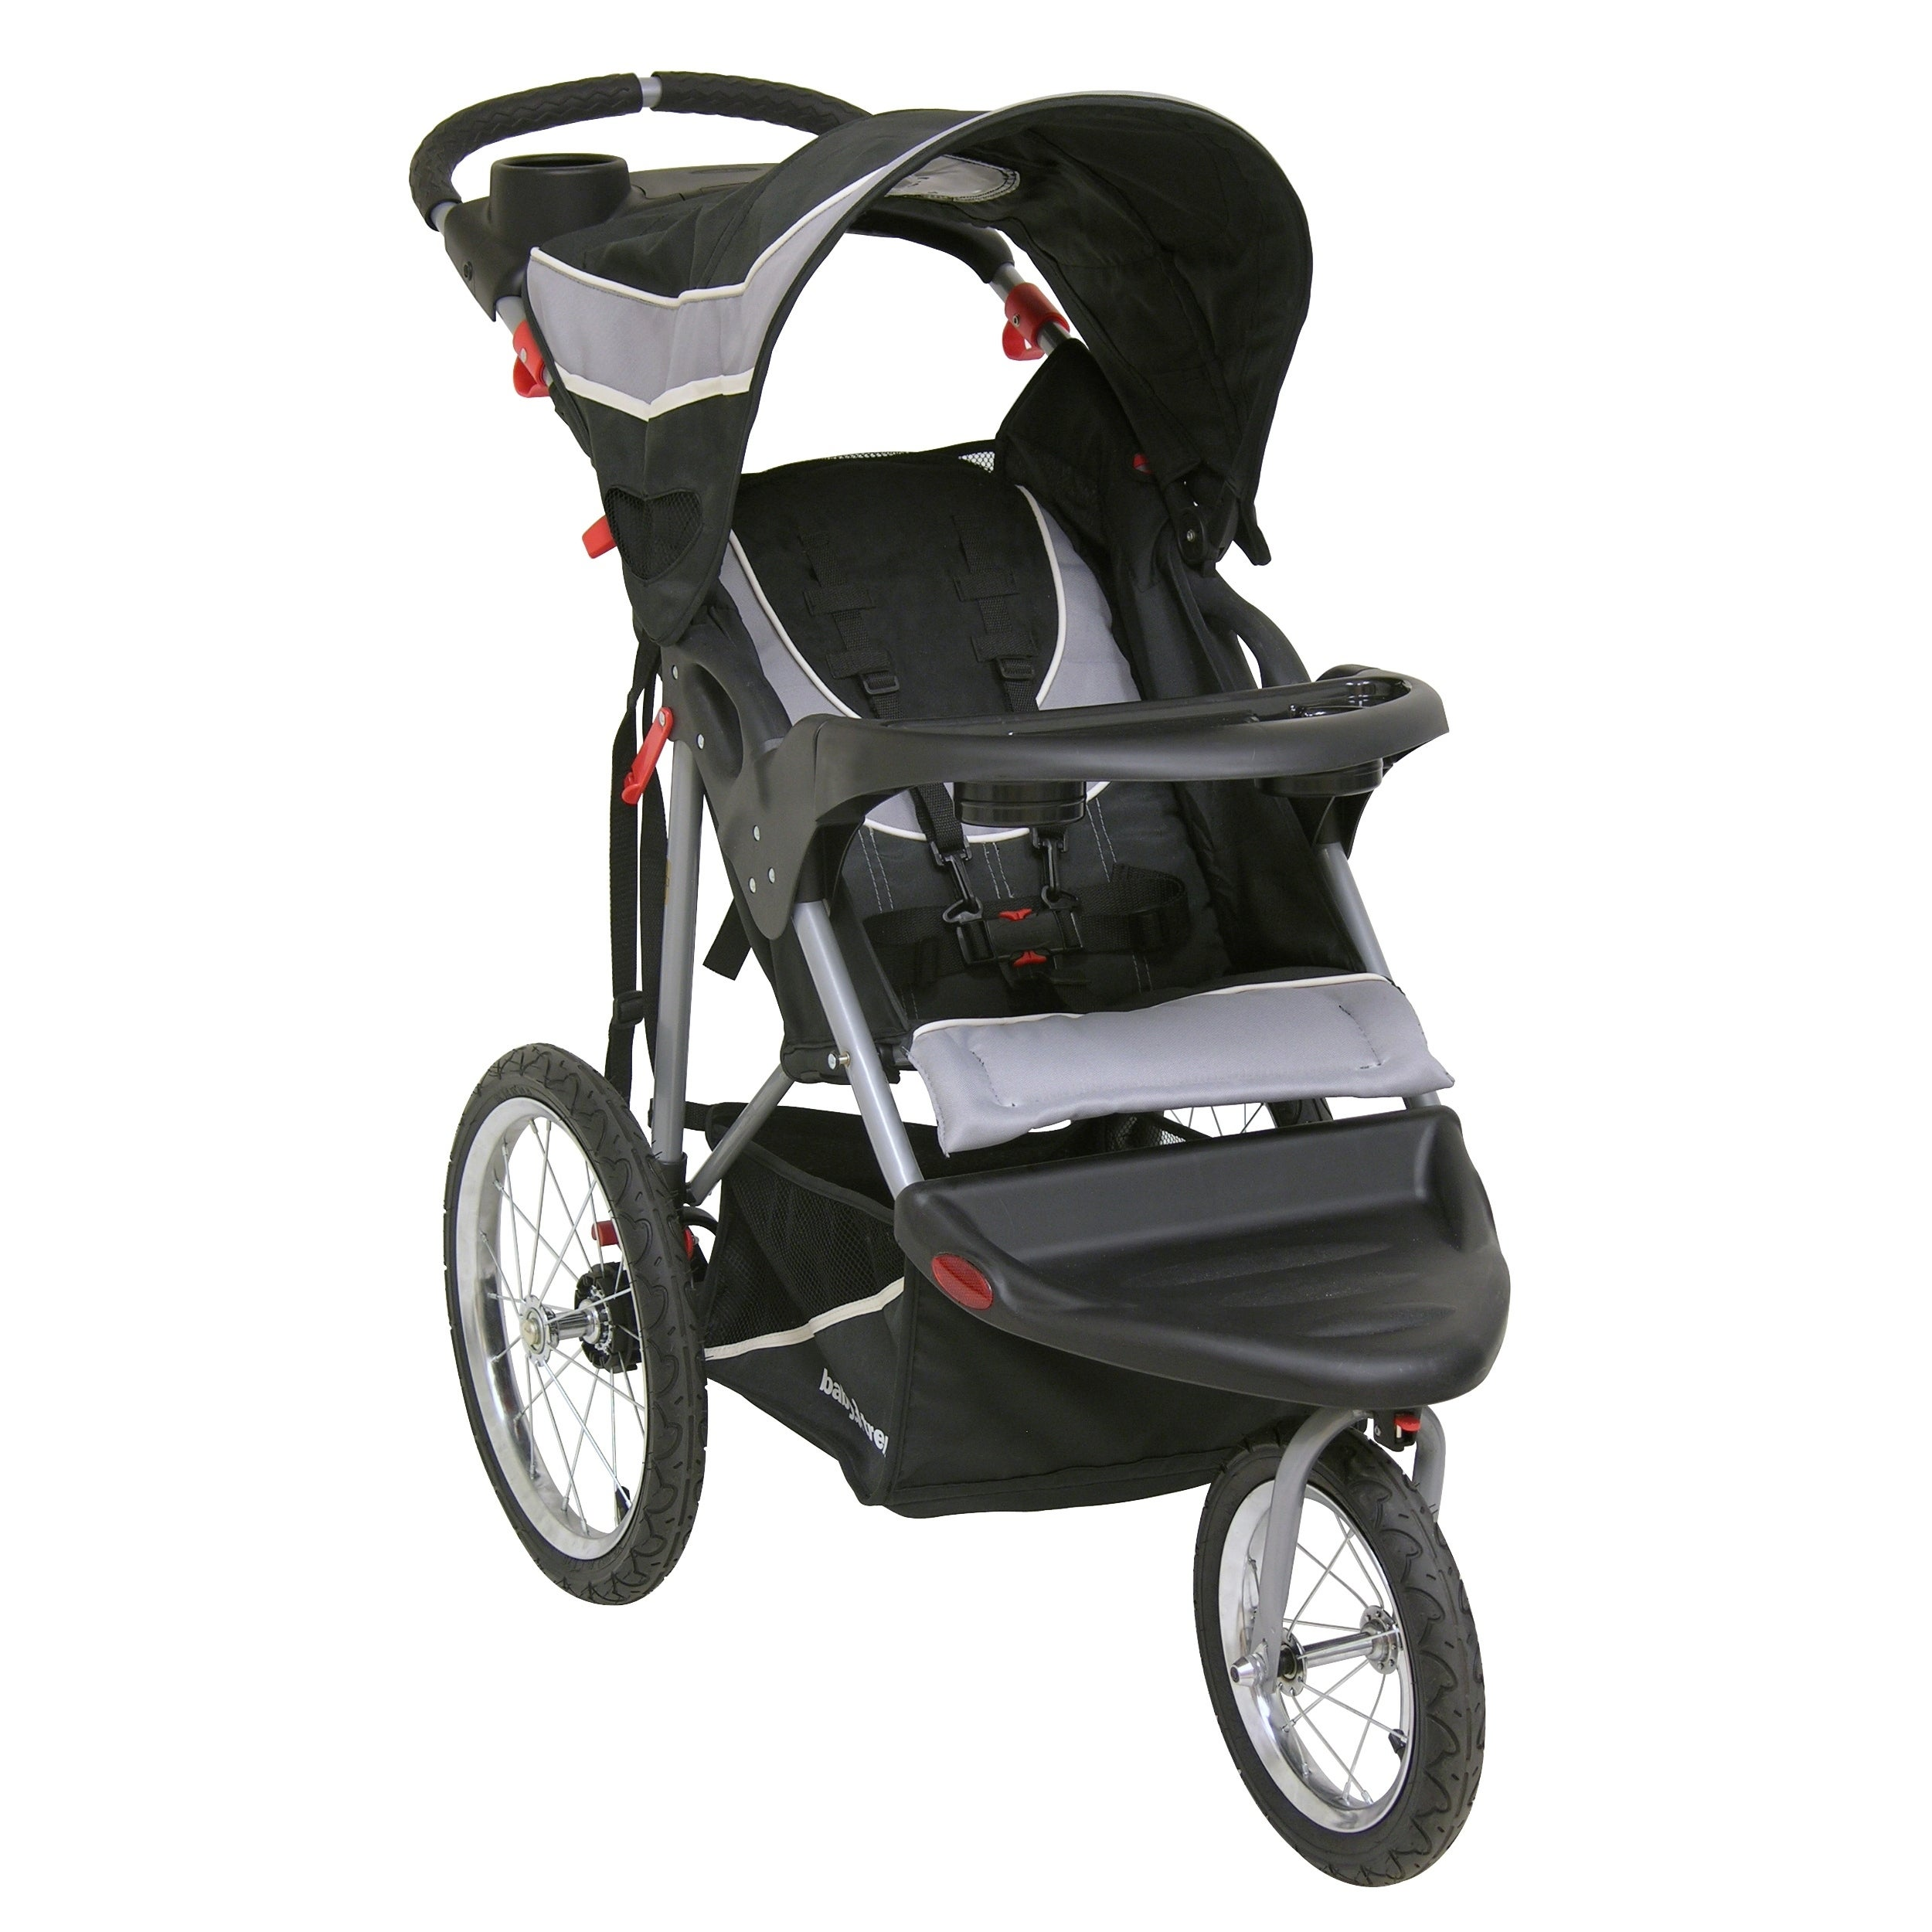 Baby Trend Expedition Jogger Stroller, Phantom, 50 Pounds...